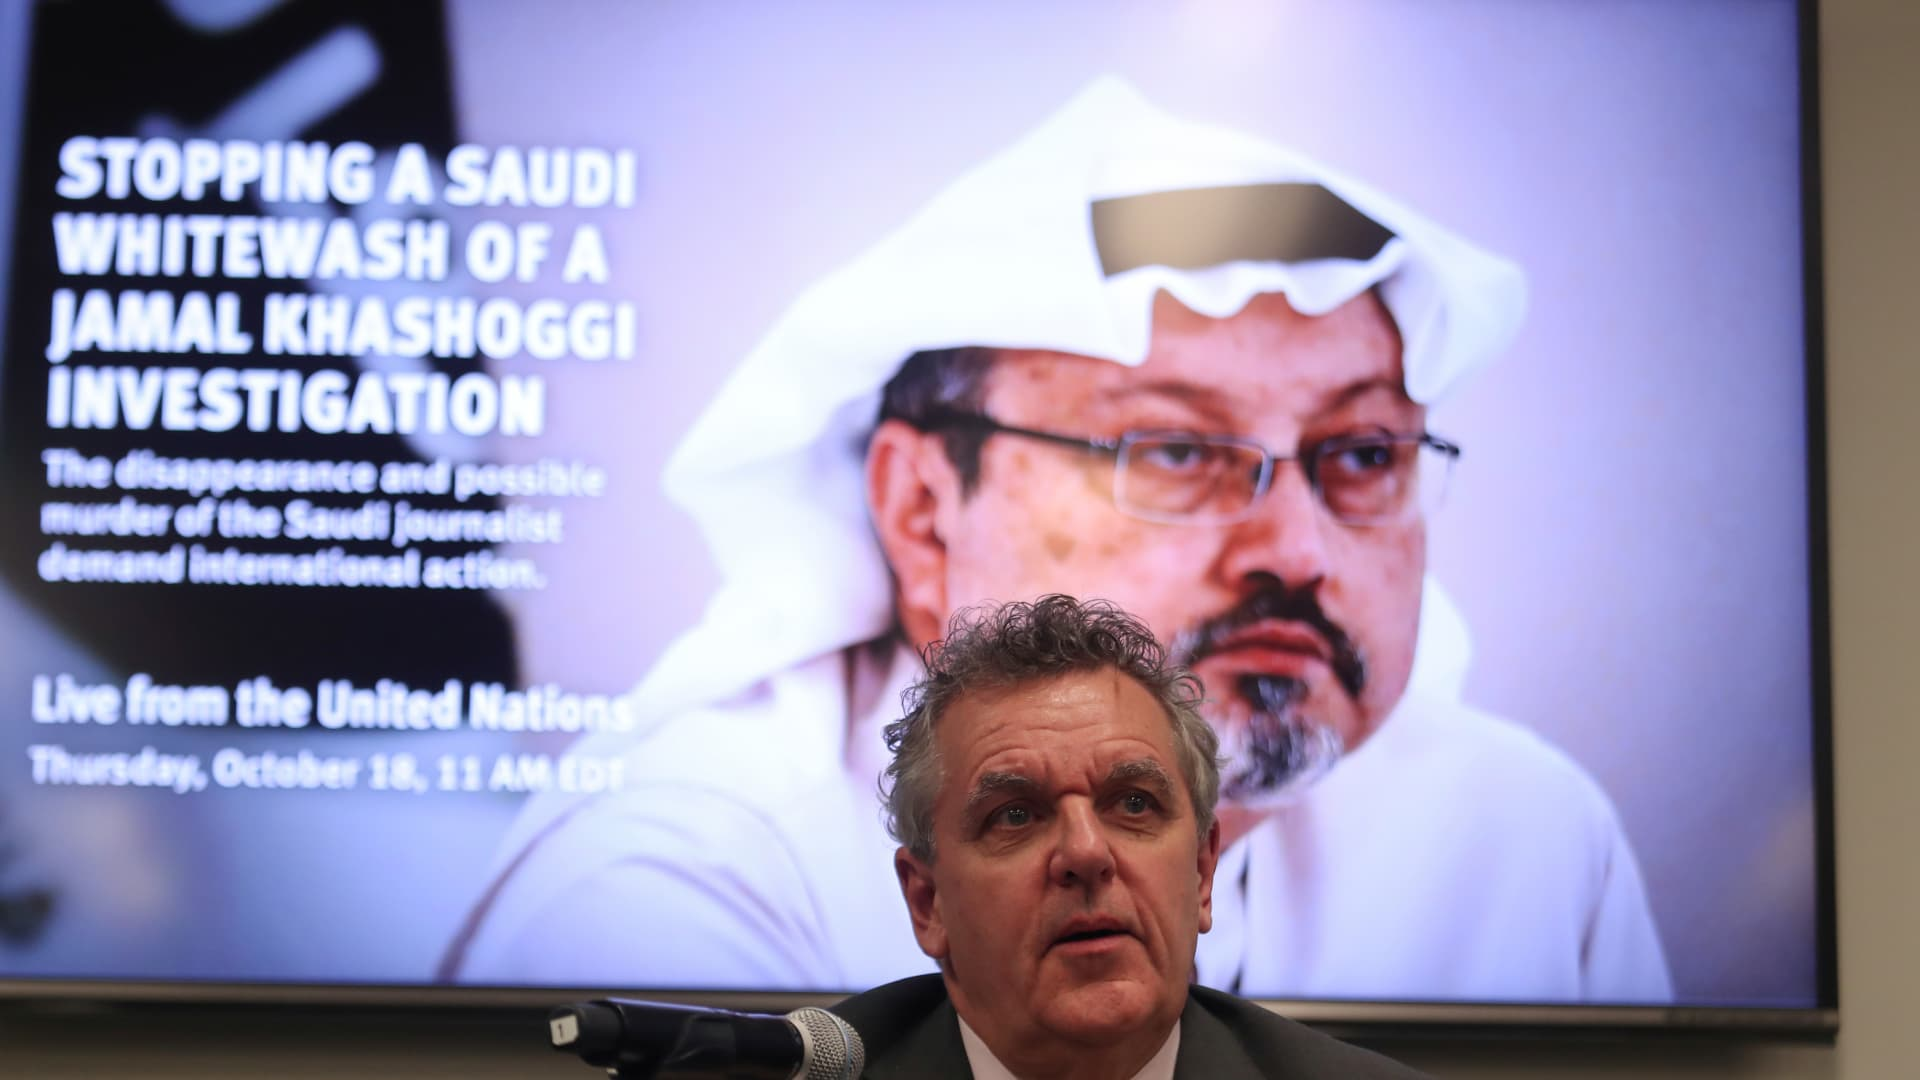 Robert Mahoney, Deputy Executive for the Committee to Protect Journalists, speaks during a news conference to issue an appeal to the UN on the disappearance of Saudi journalist Jamal Khashoggi at the United Nations in New York, U.S., October 18, 2018.